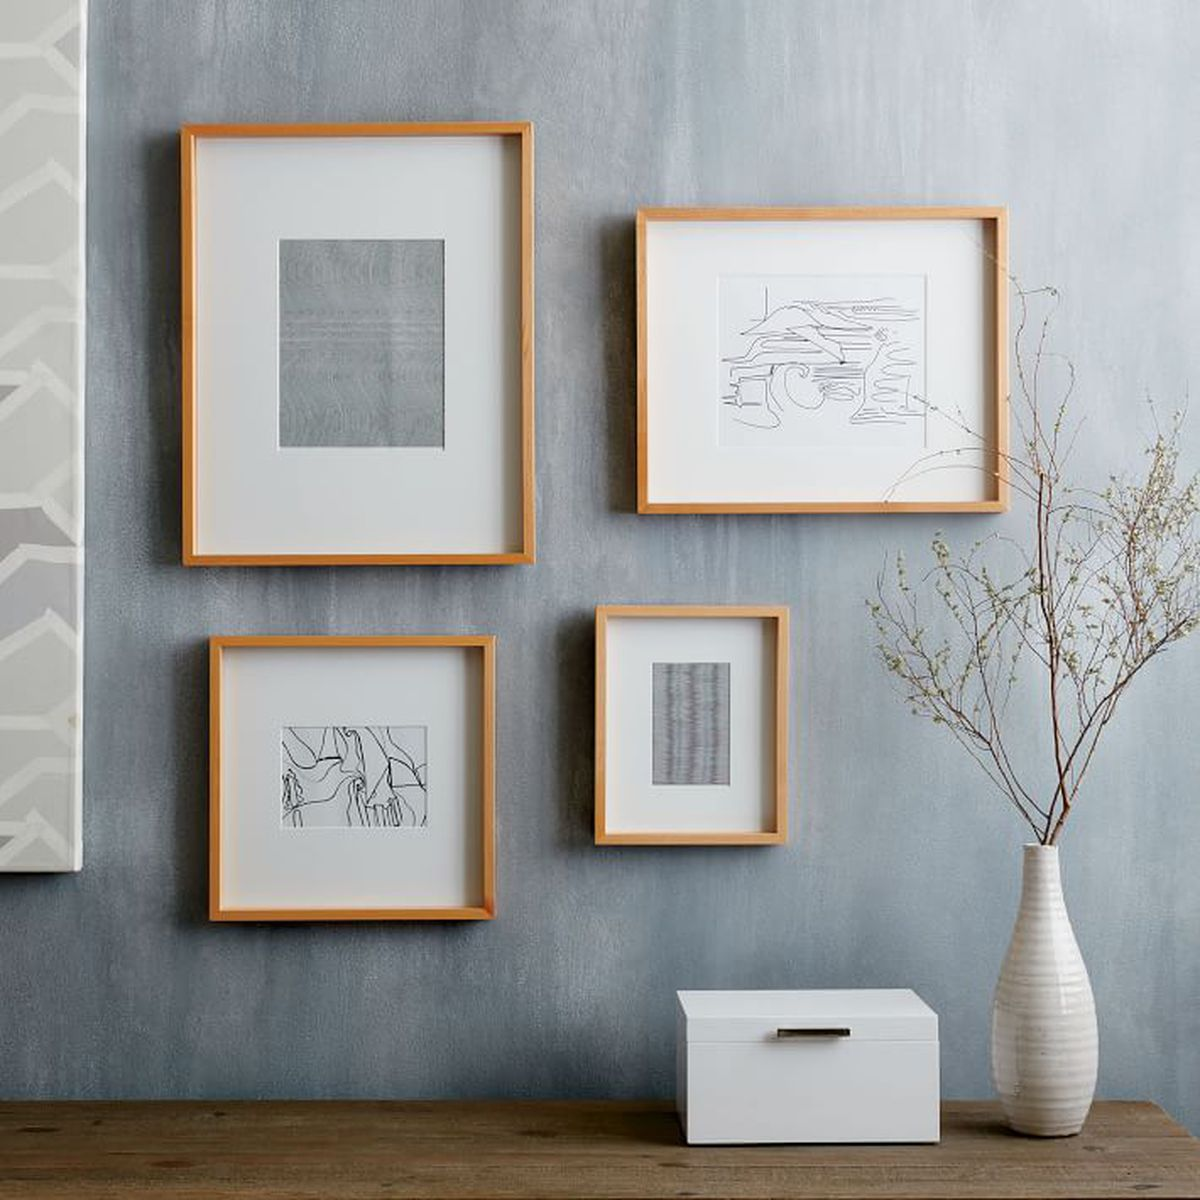 Affordable frames for hanging art at home - Curbed